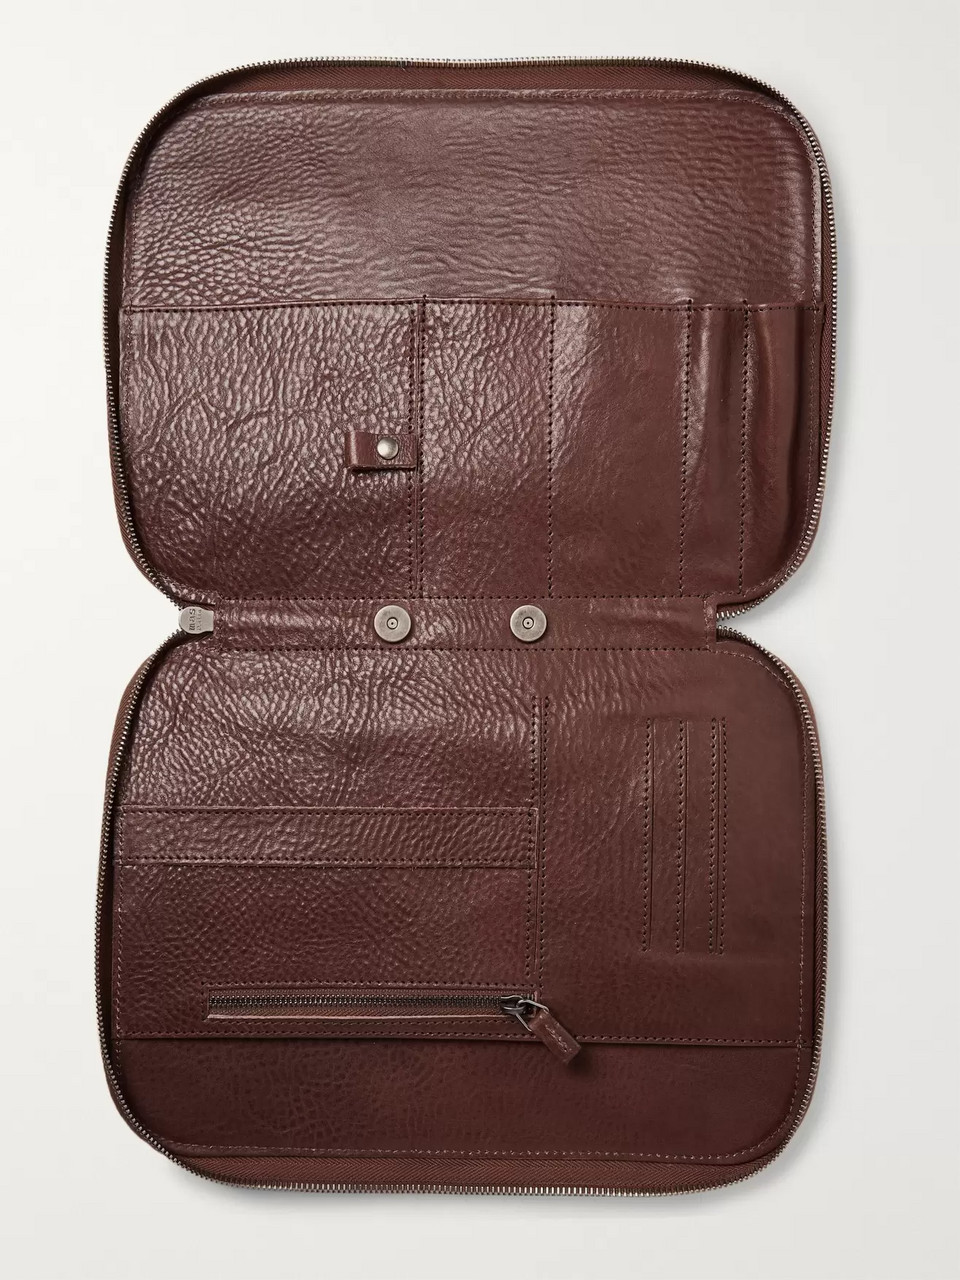 This Is Ground Mod Tablet 5 Leather Pouch